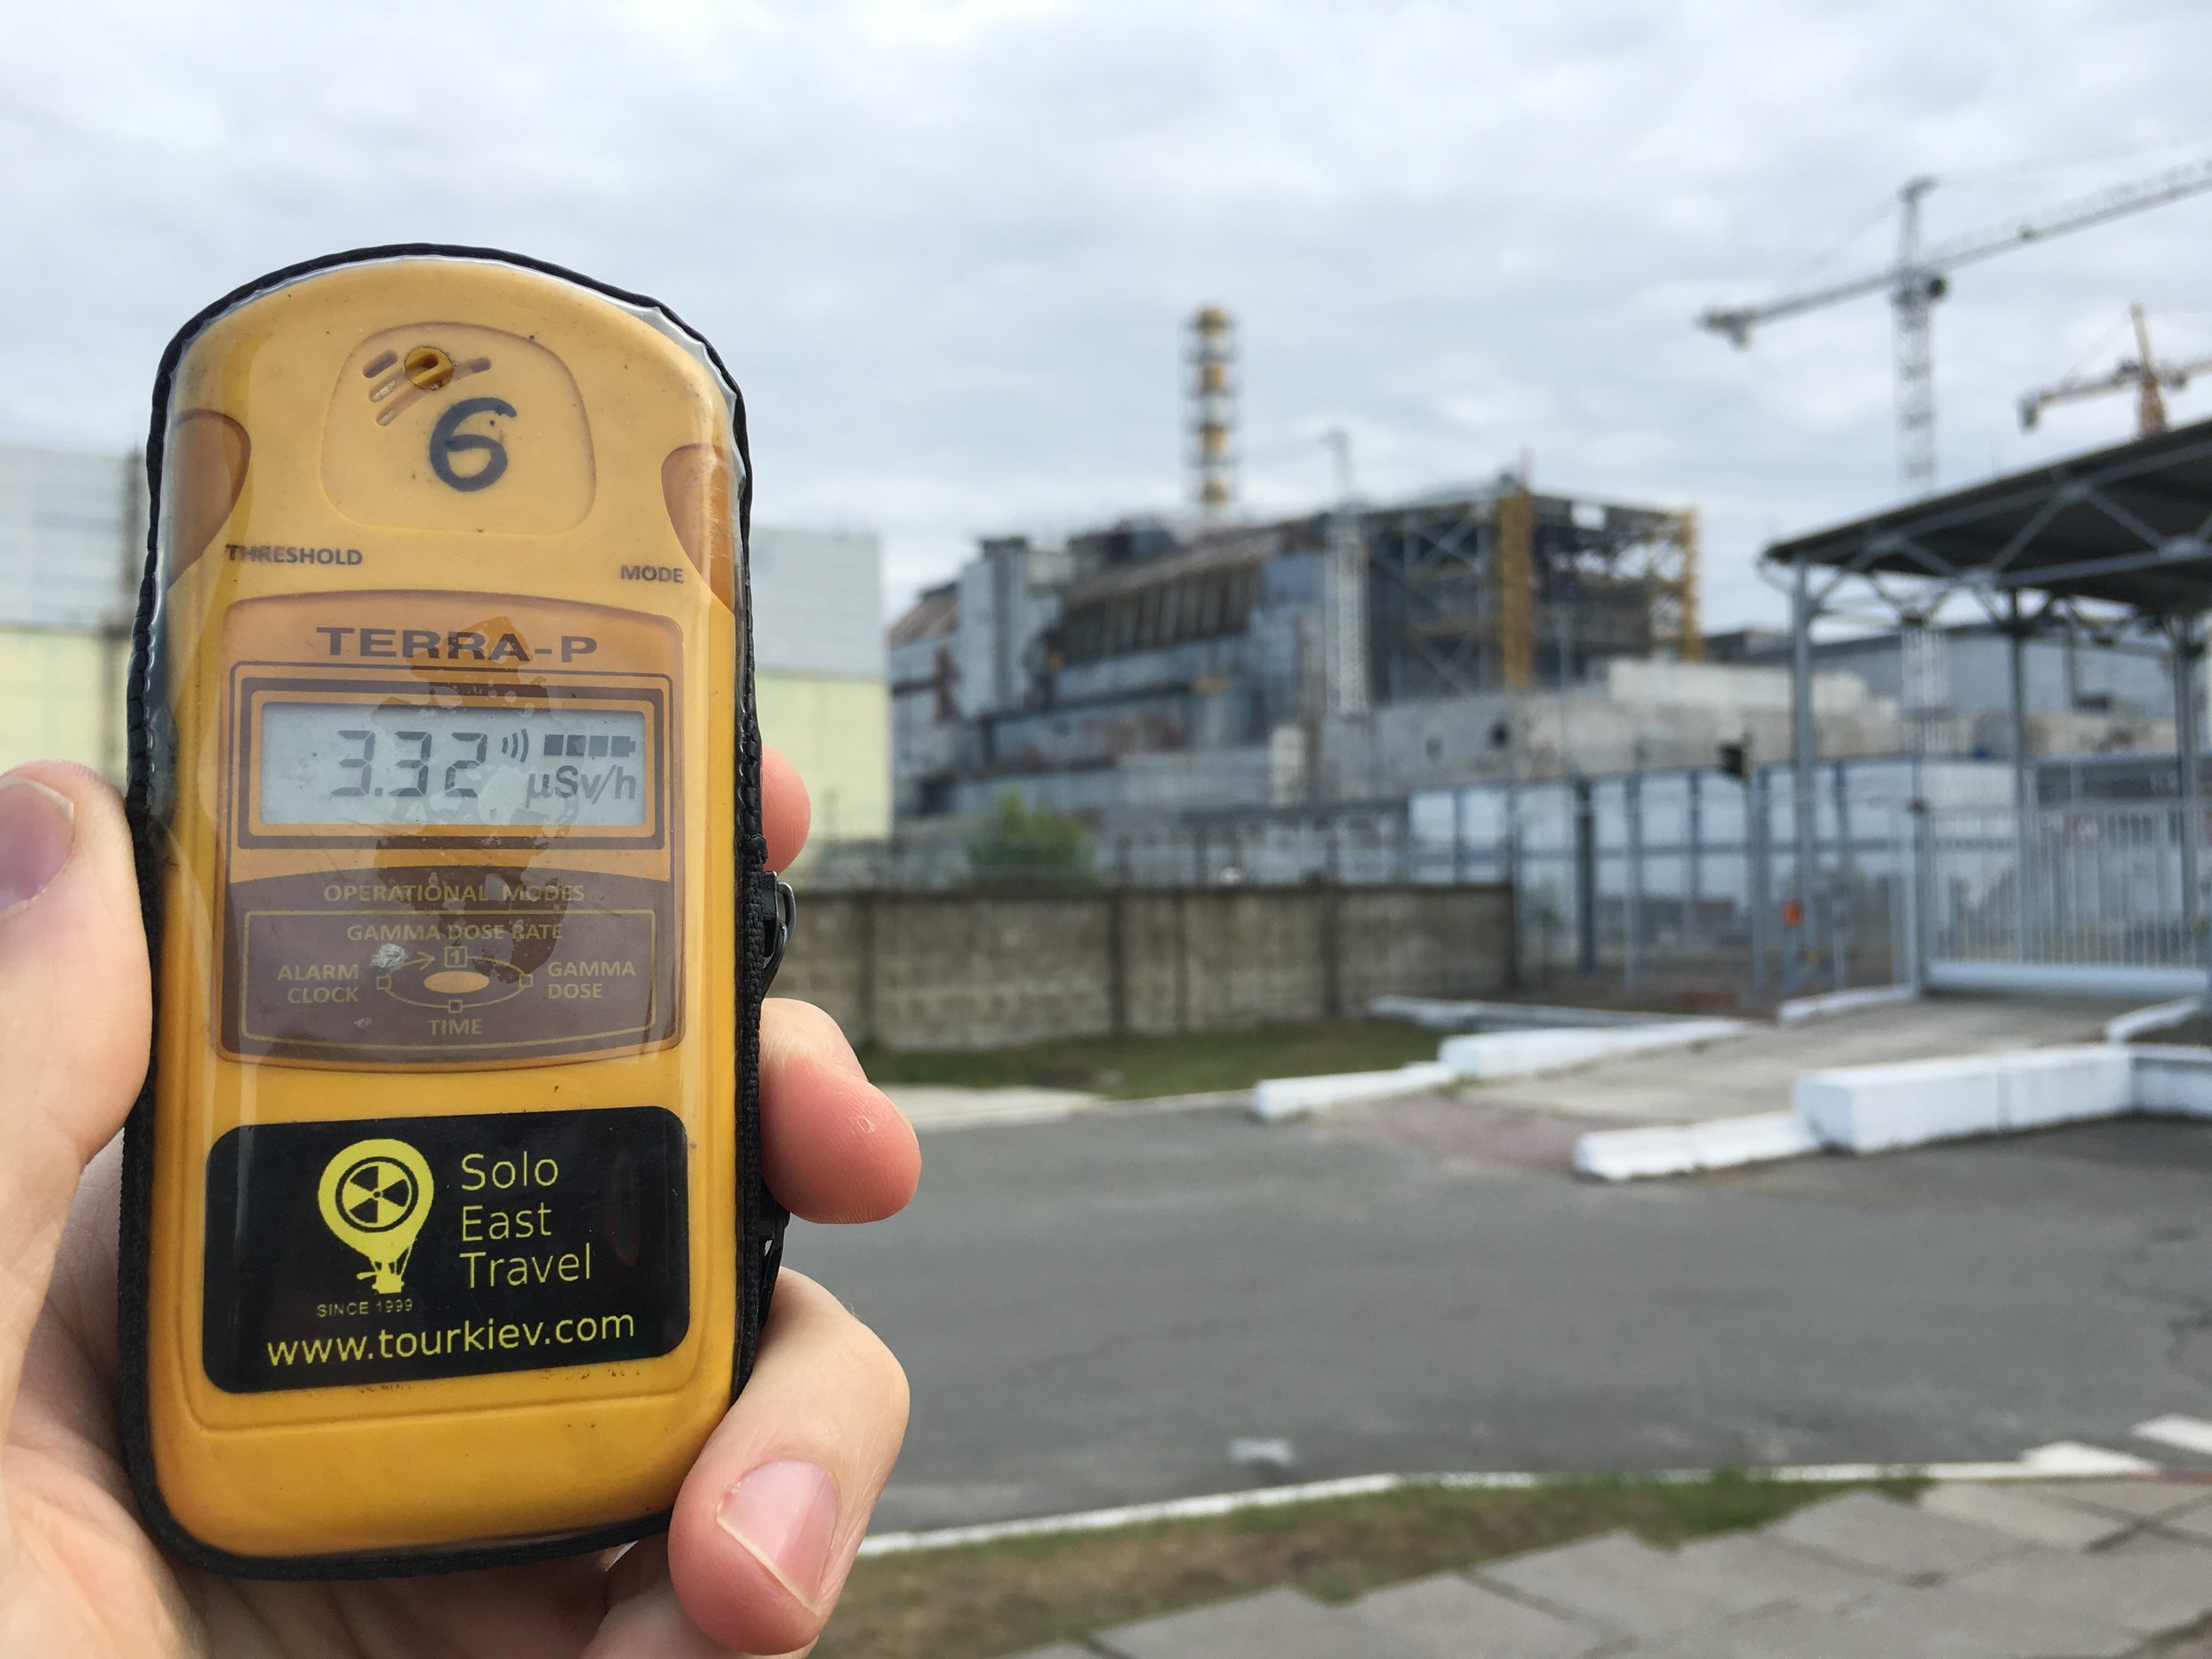 A Geiger counter measuring radiation at the Chernobyl nuclear reactor